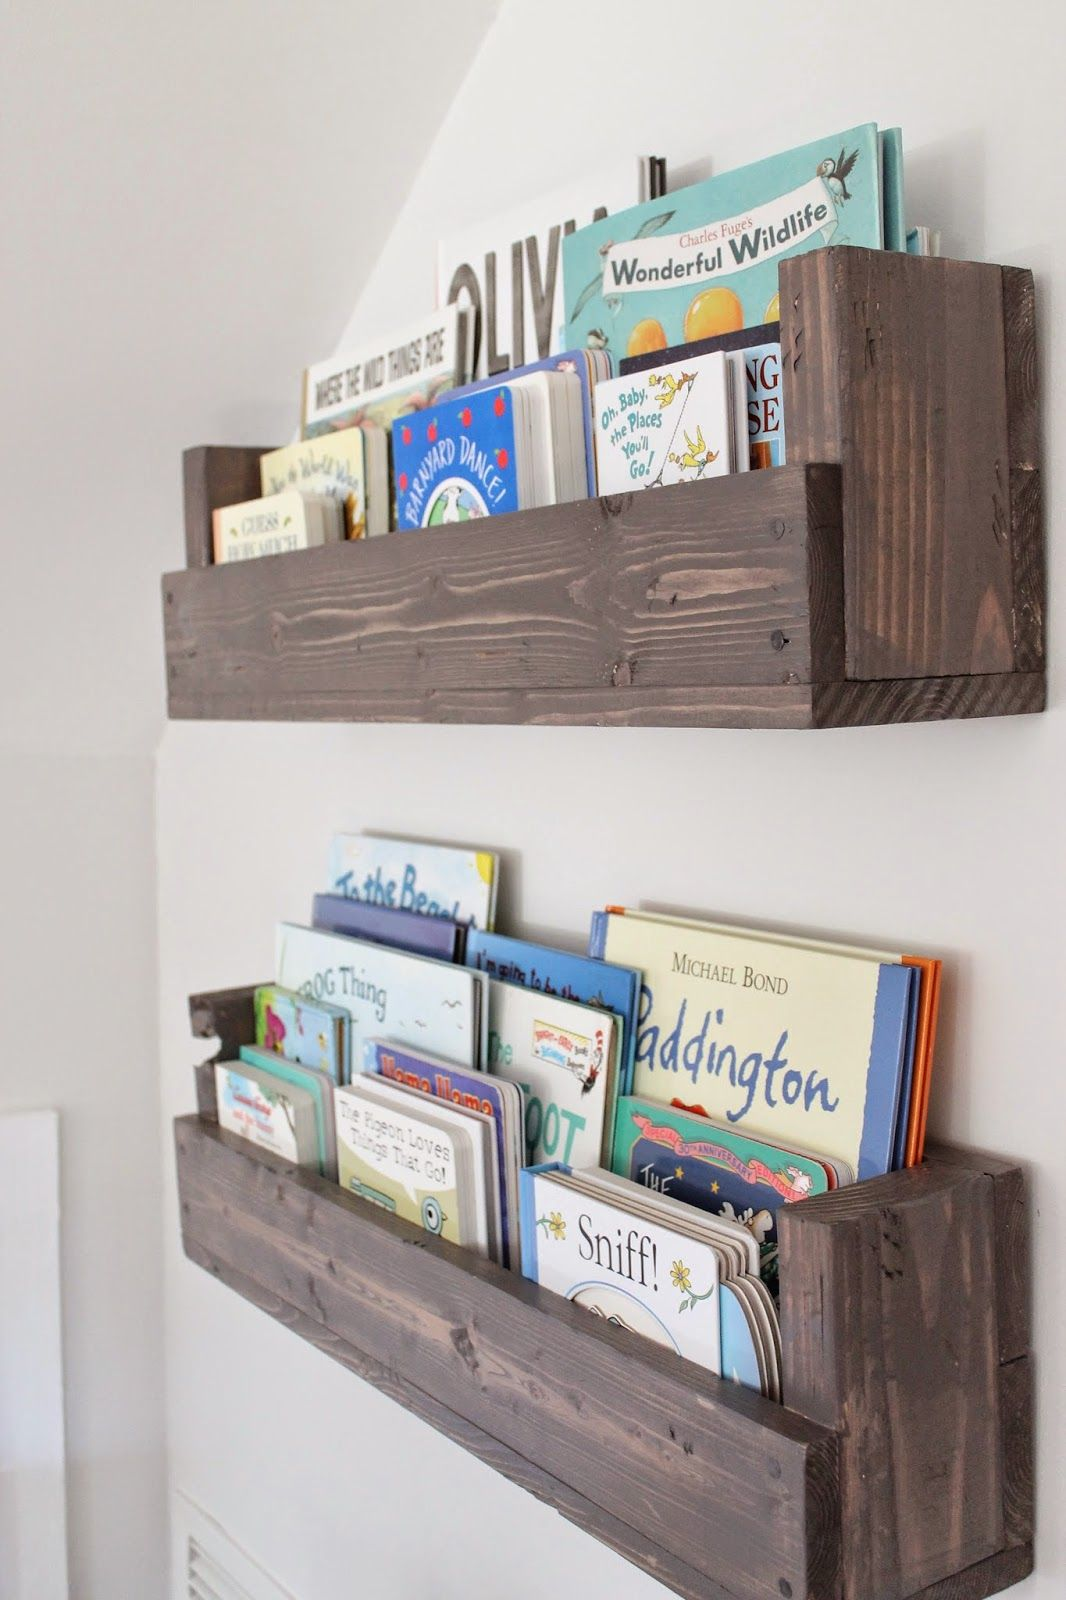 Wall Hanging Bookshelves we decided to create our own diy wall mount bookshelf. i'll show